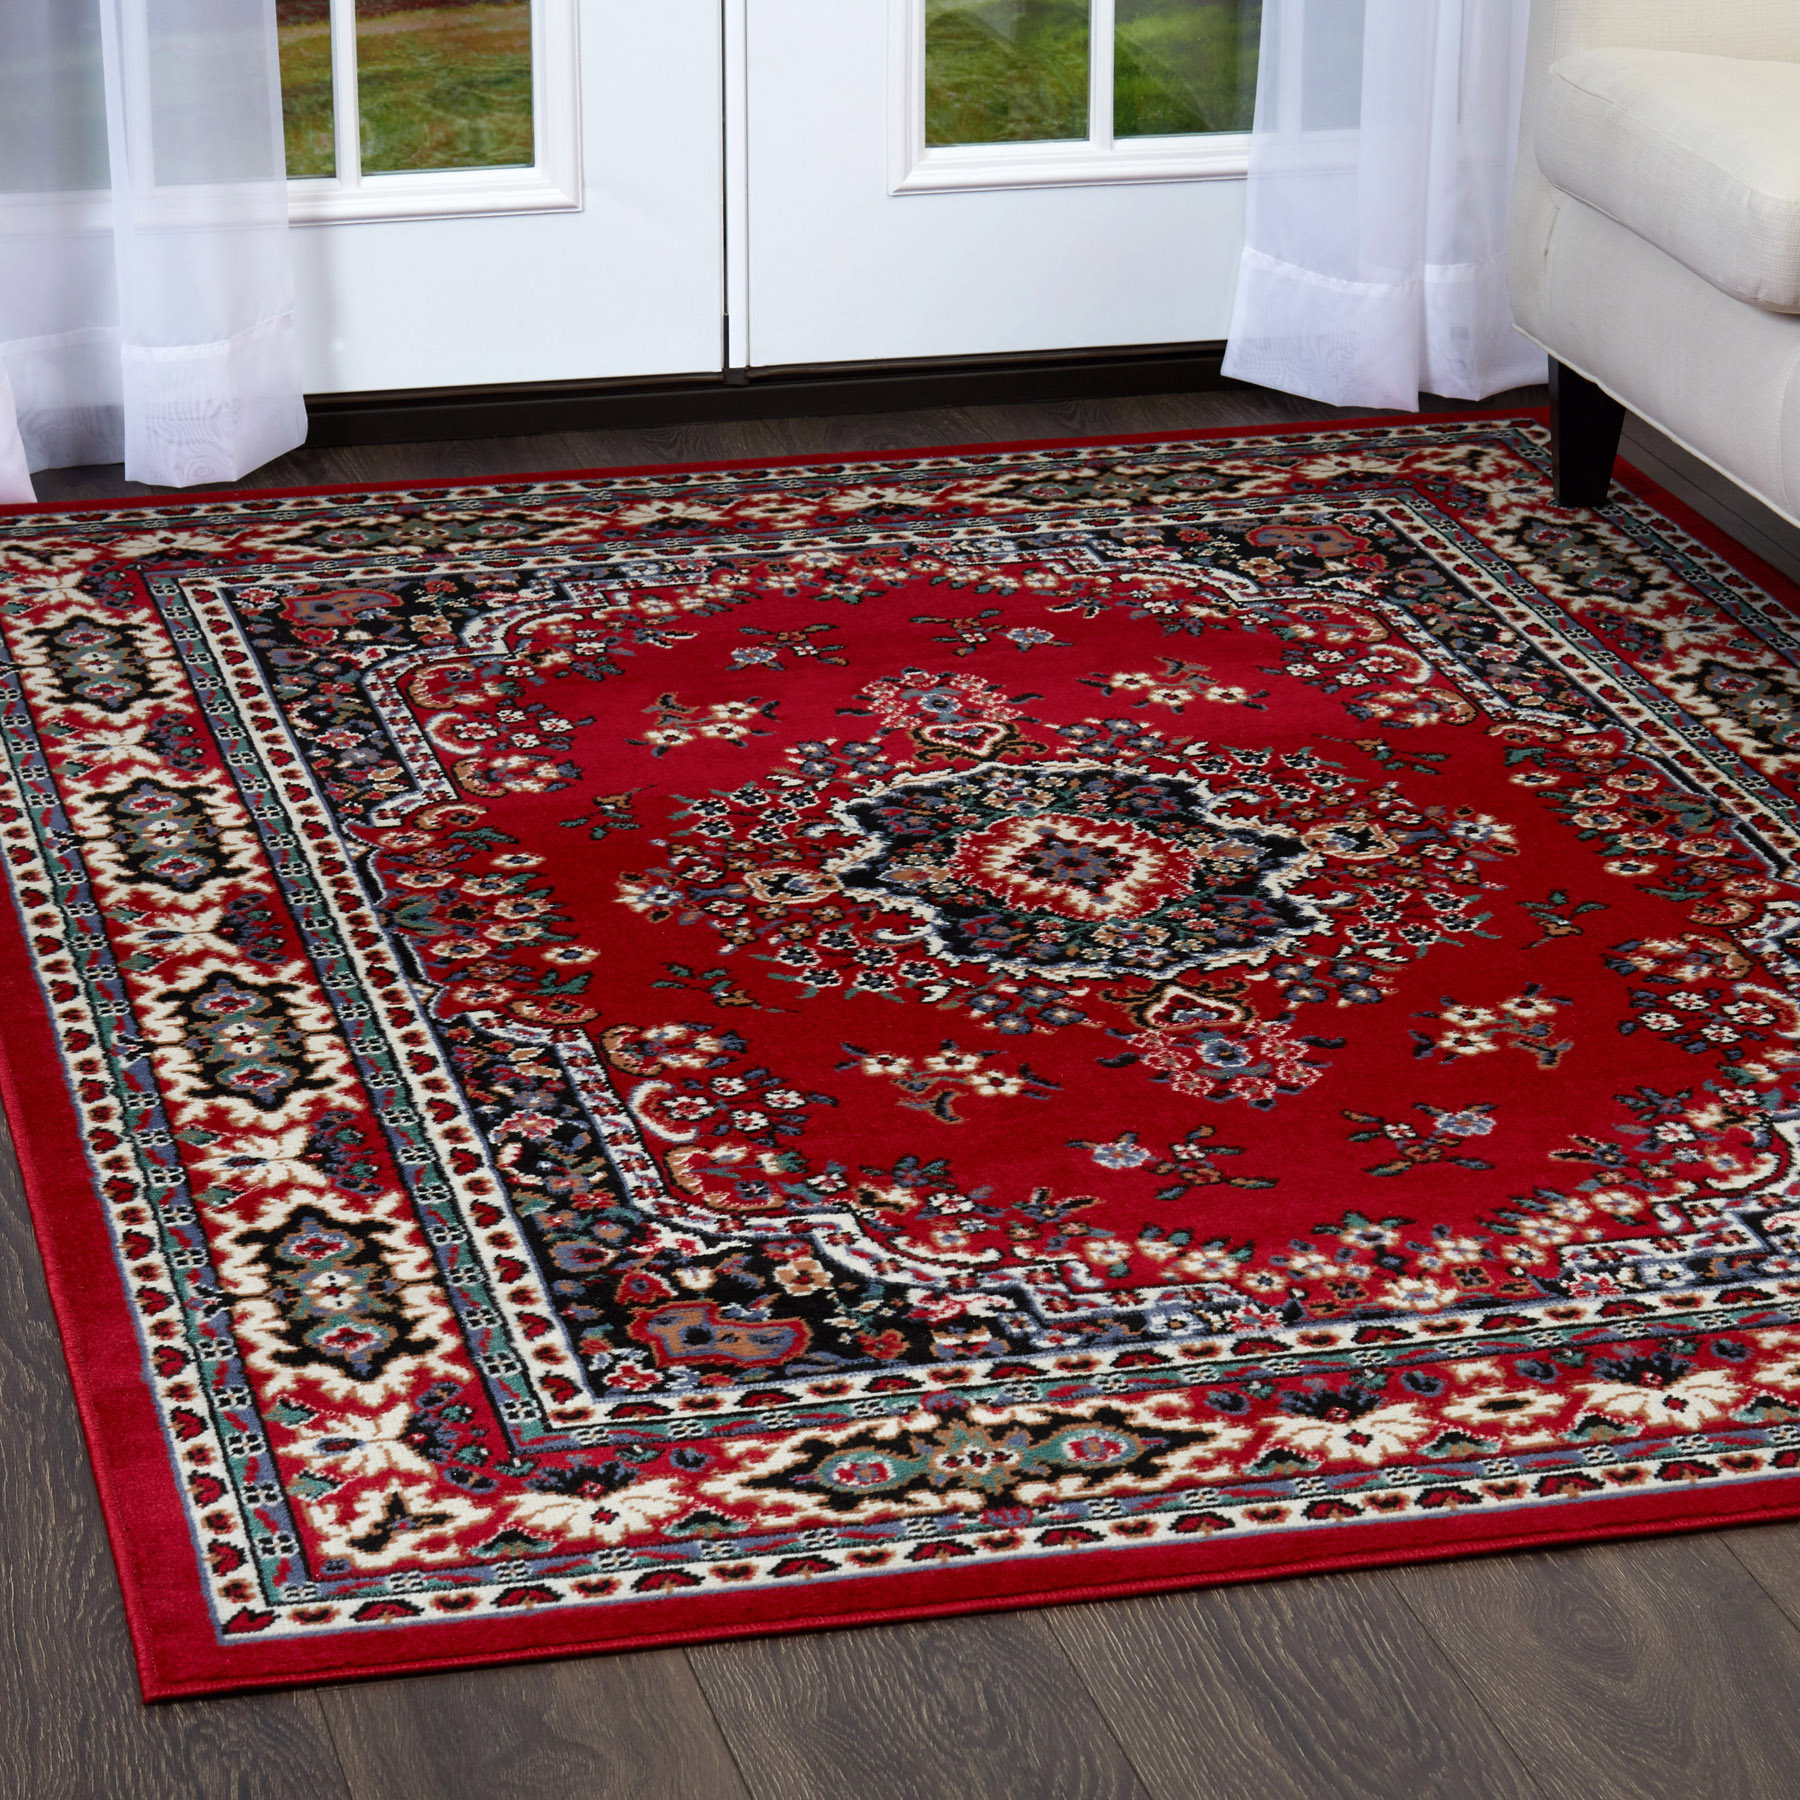 Rug Runner Rug: Traditional Oriental Medallion Area Rug Persian Style